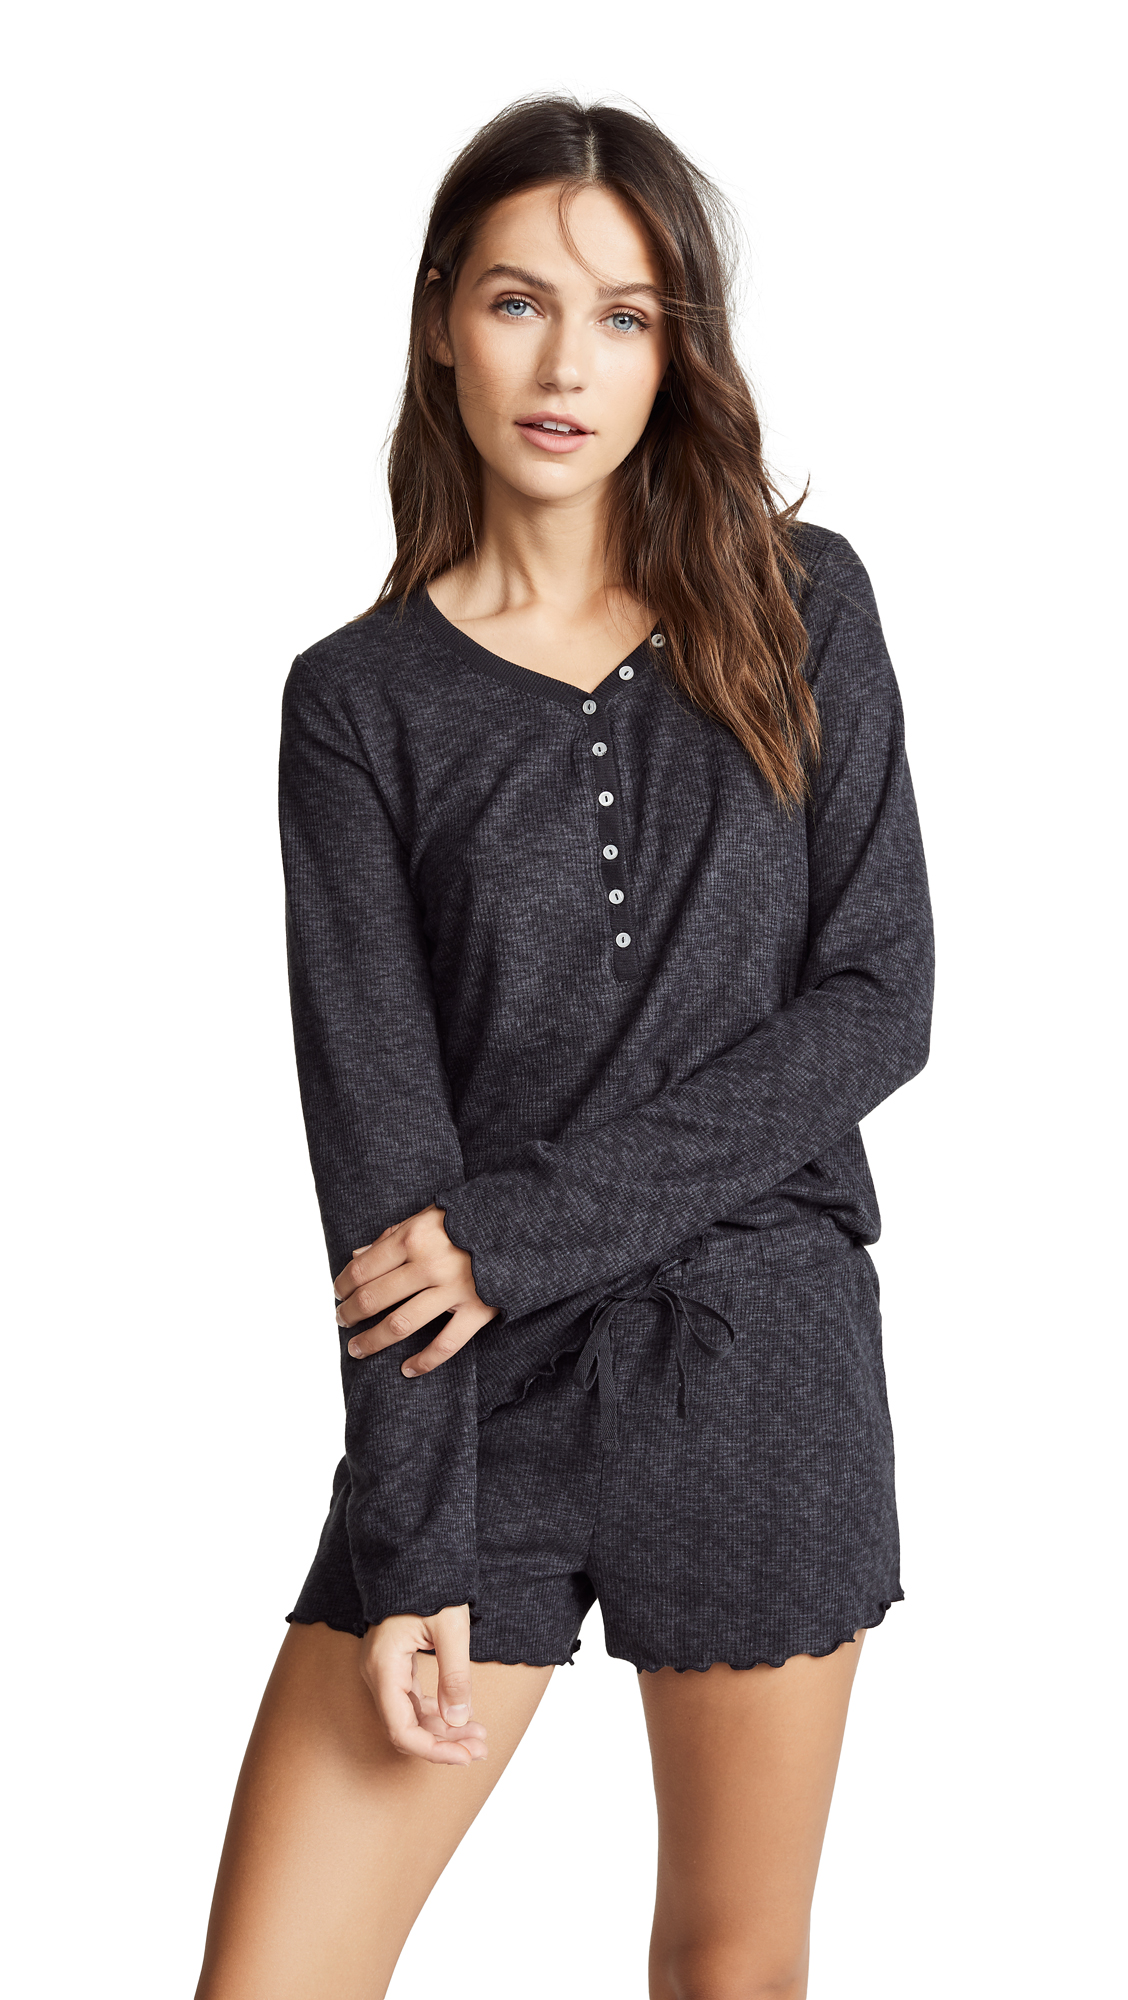 Emerson Road It's All About Texture Long Sleeve PJ Set In Black